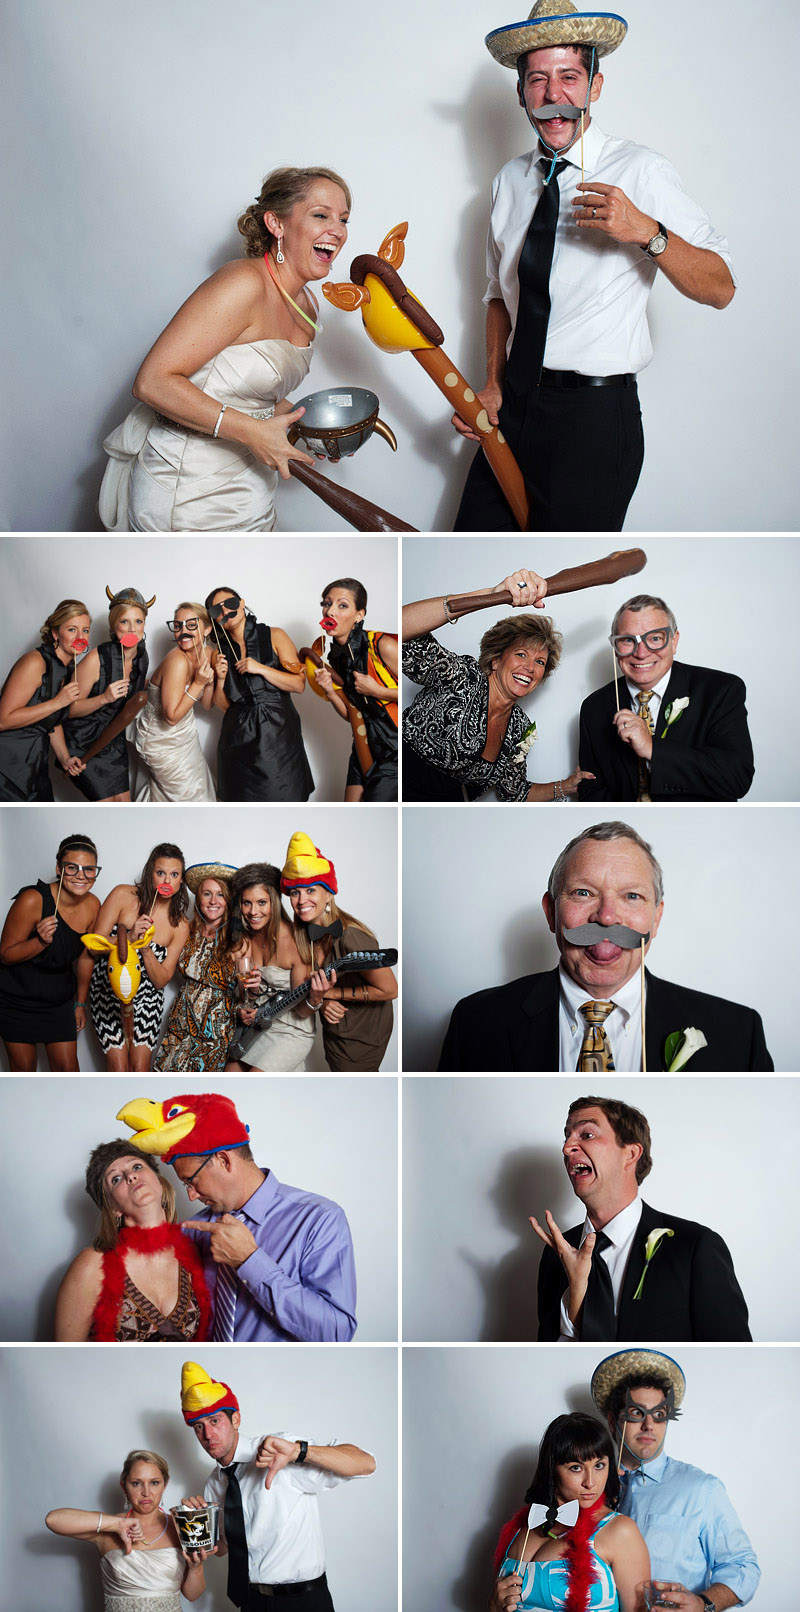 Fun photo booth pictures.